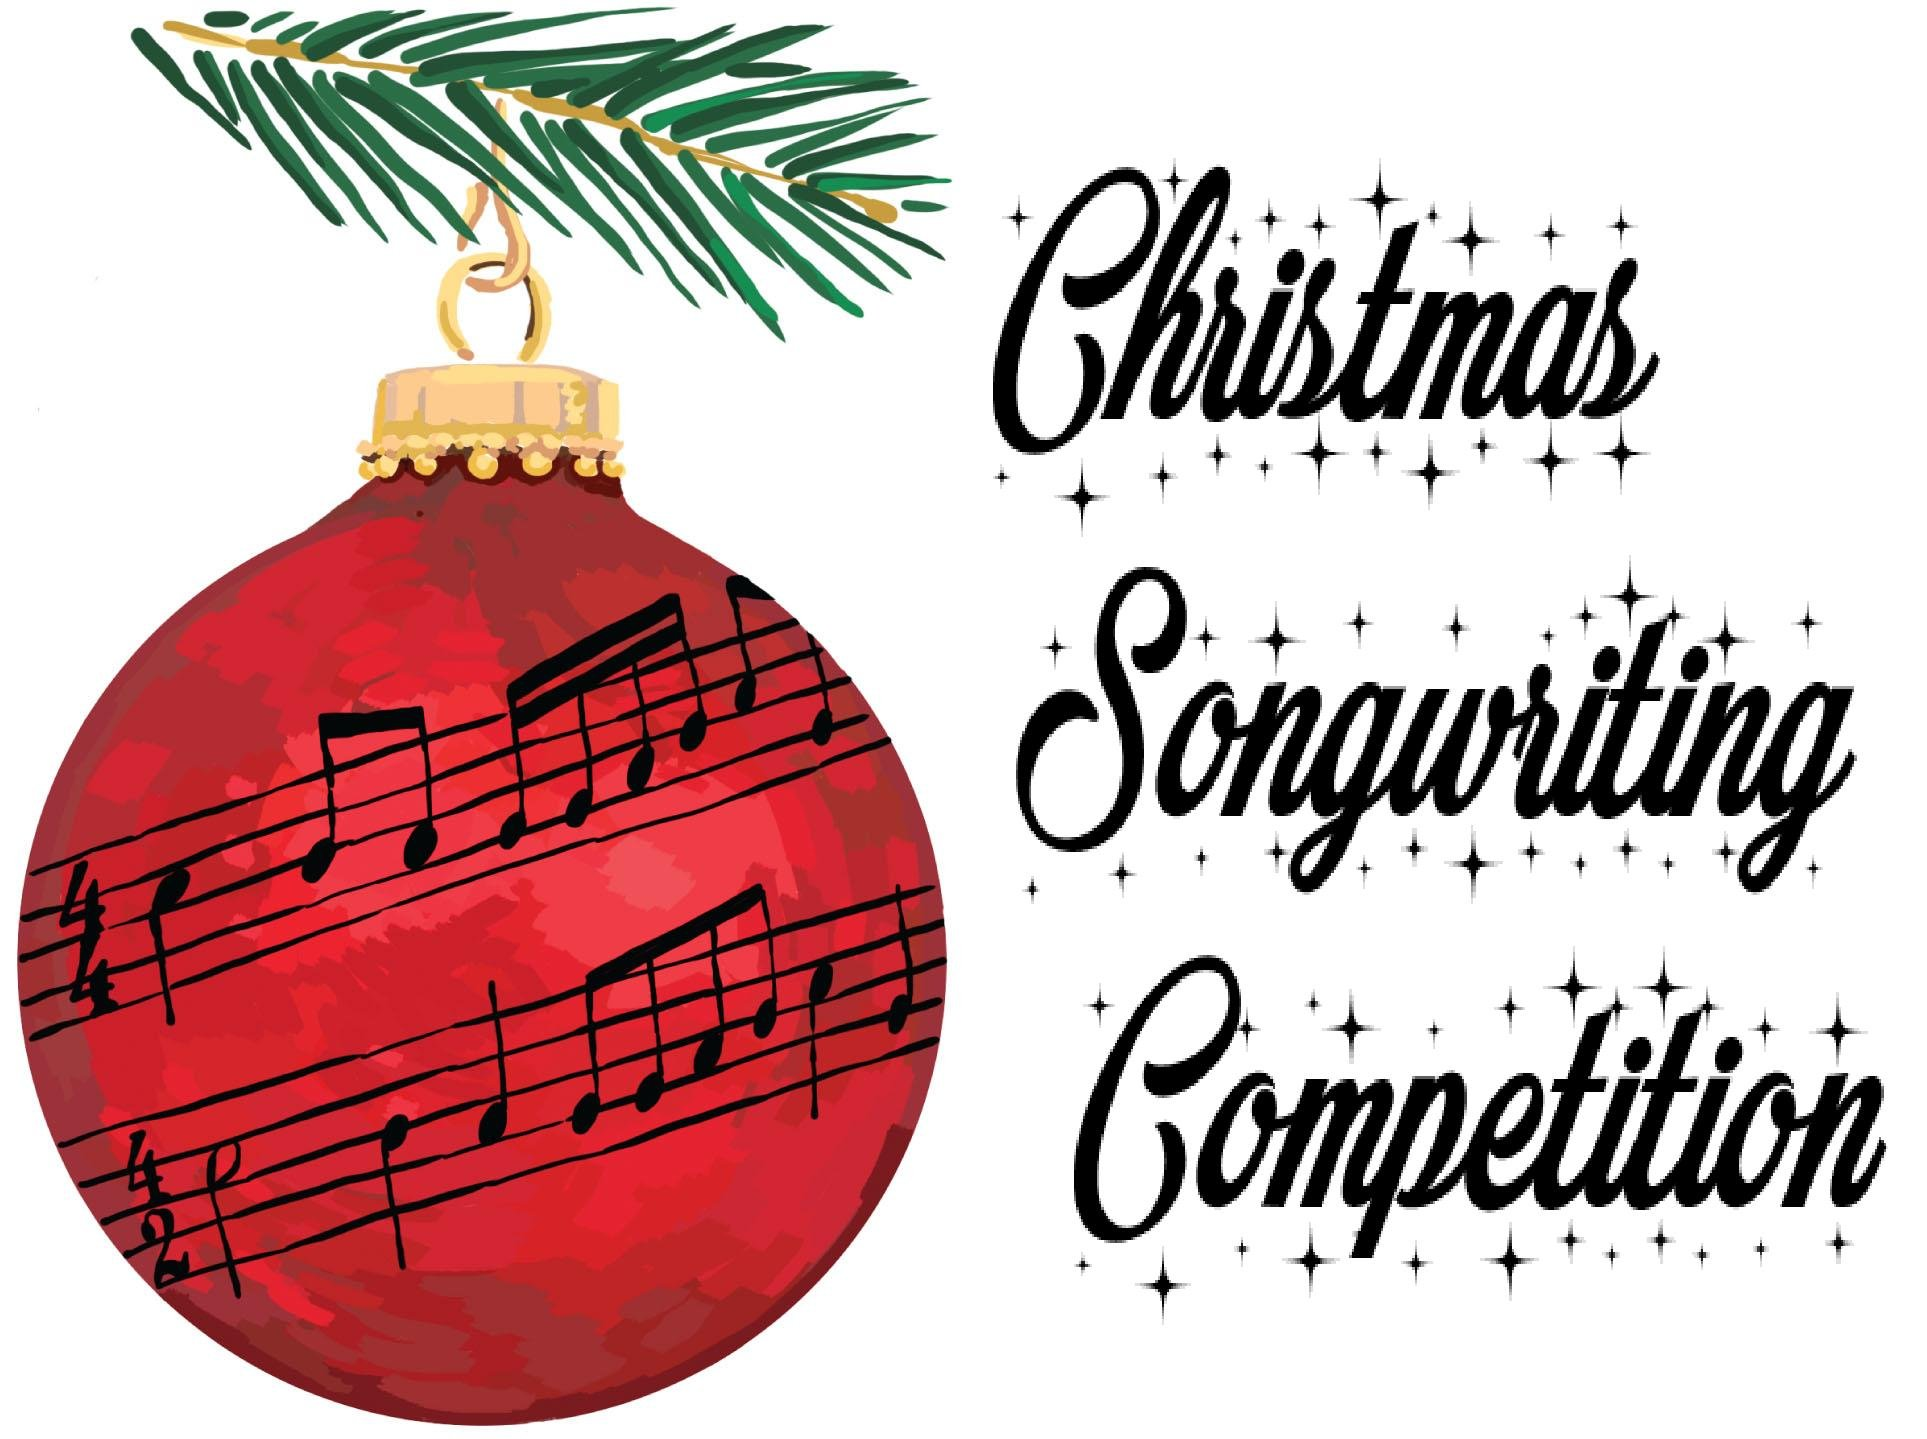 ChristmasSongwritingCompetition-3.jpg